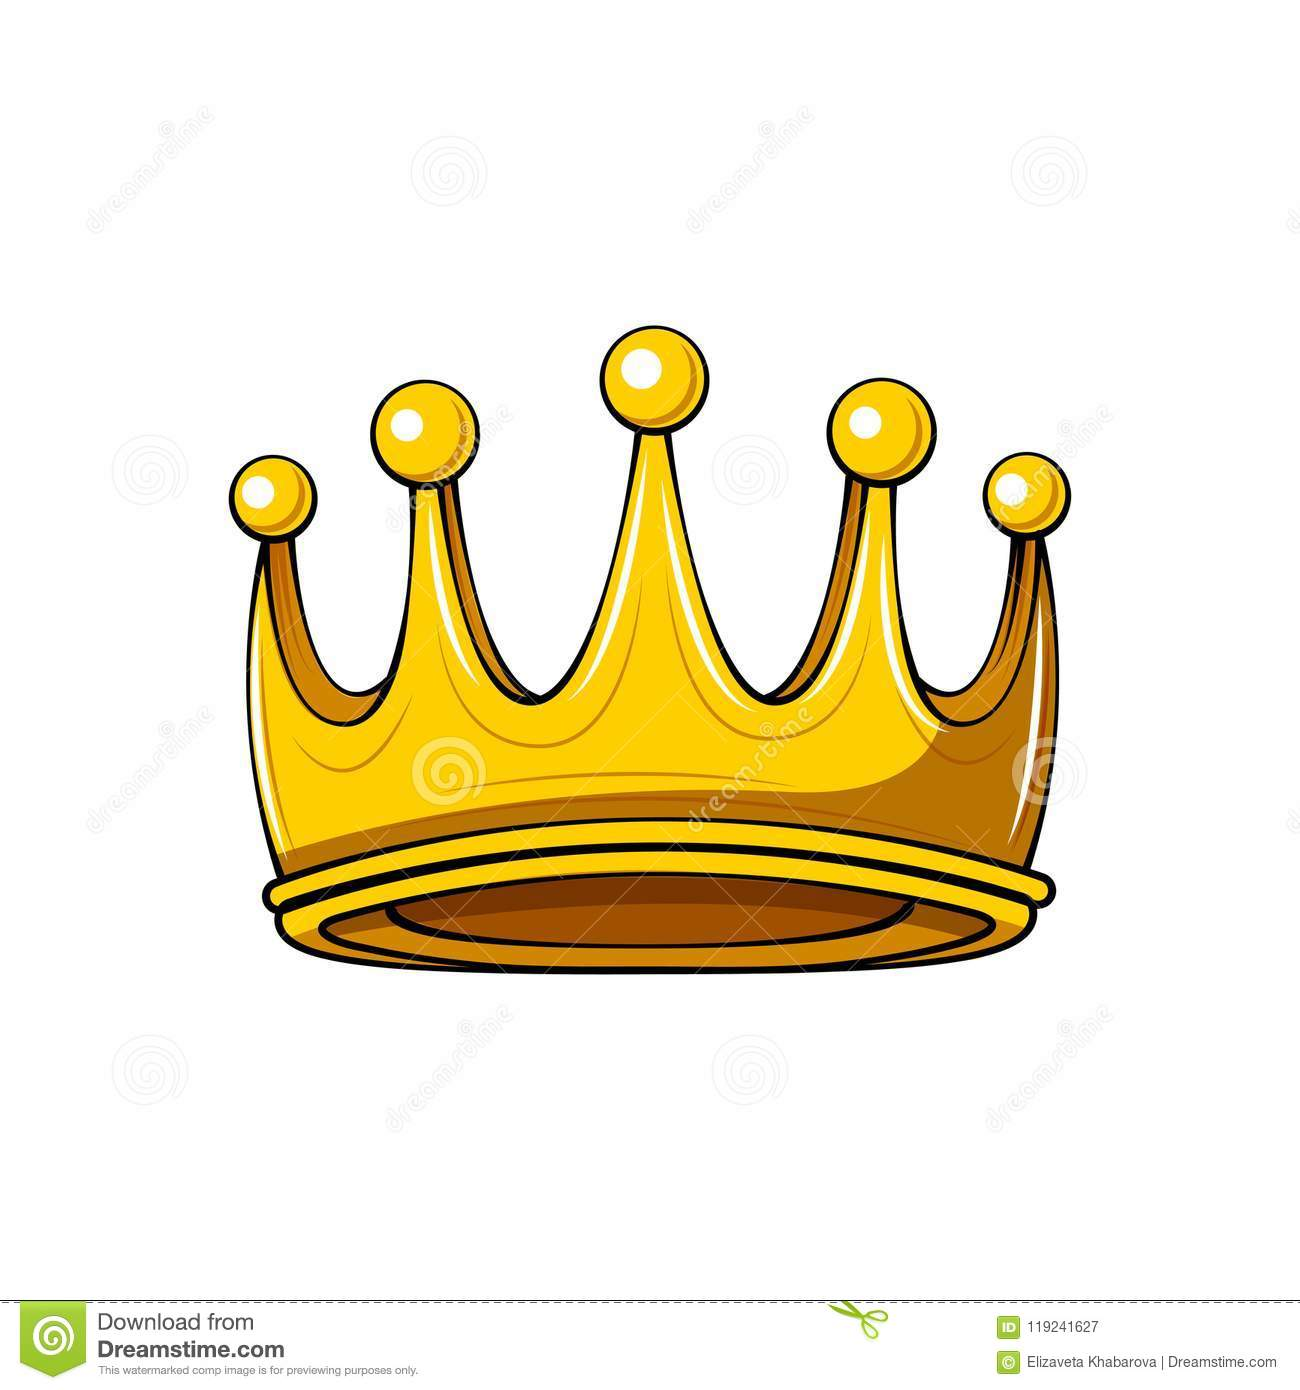 Golden Cartoon Crown Royal Badge King Symbol Queen Sign Design Element Vector Stock Vector Illustration Of Nobility Coronation 119241627 Are you searching for queen crown png images or vector? https www dreamstime com golden cartoon crown royal badge king symbol queen sign design element vector golden cartoon crown royal badge king symbol queen image119241627